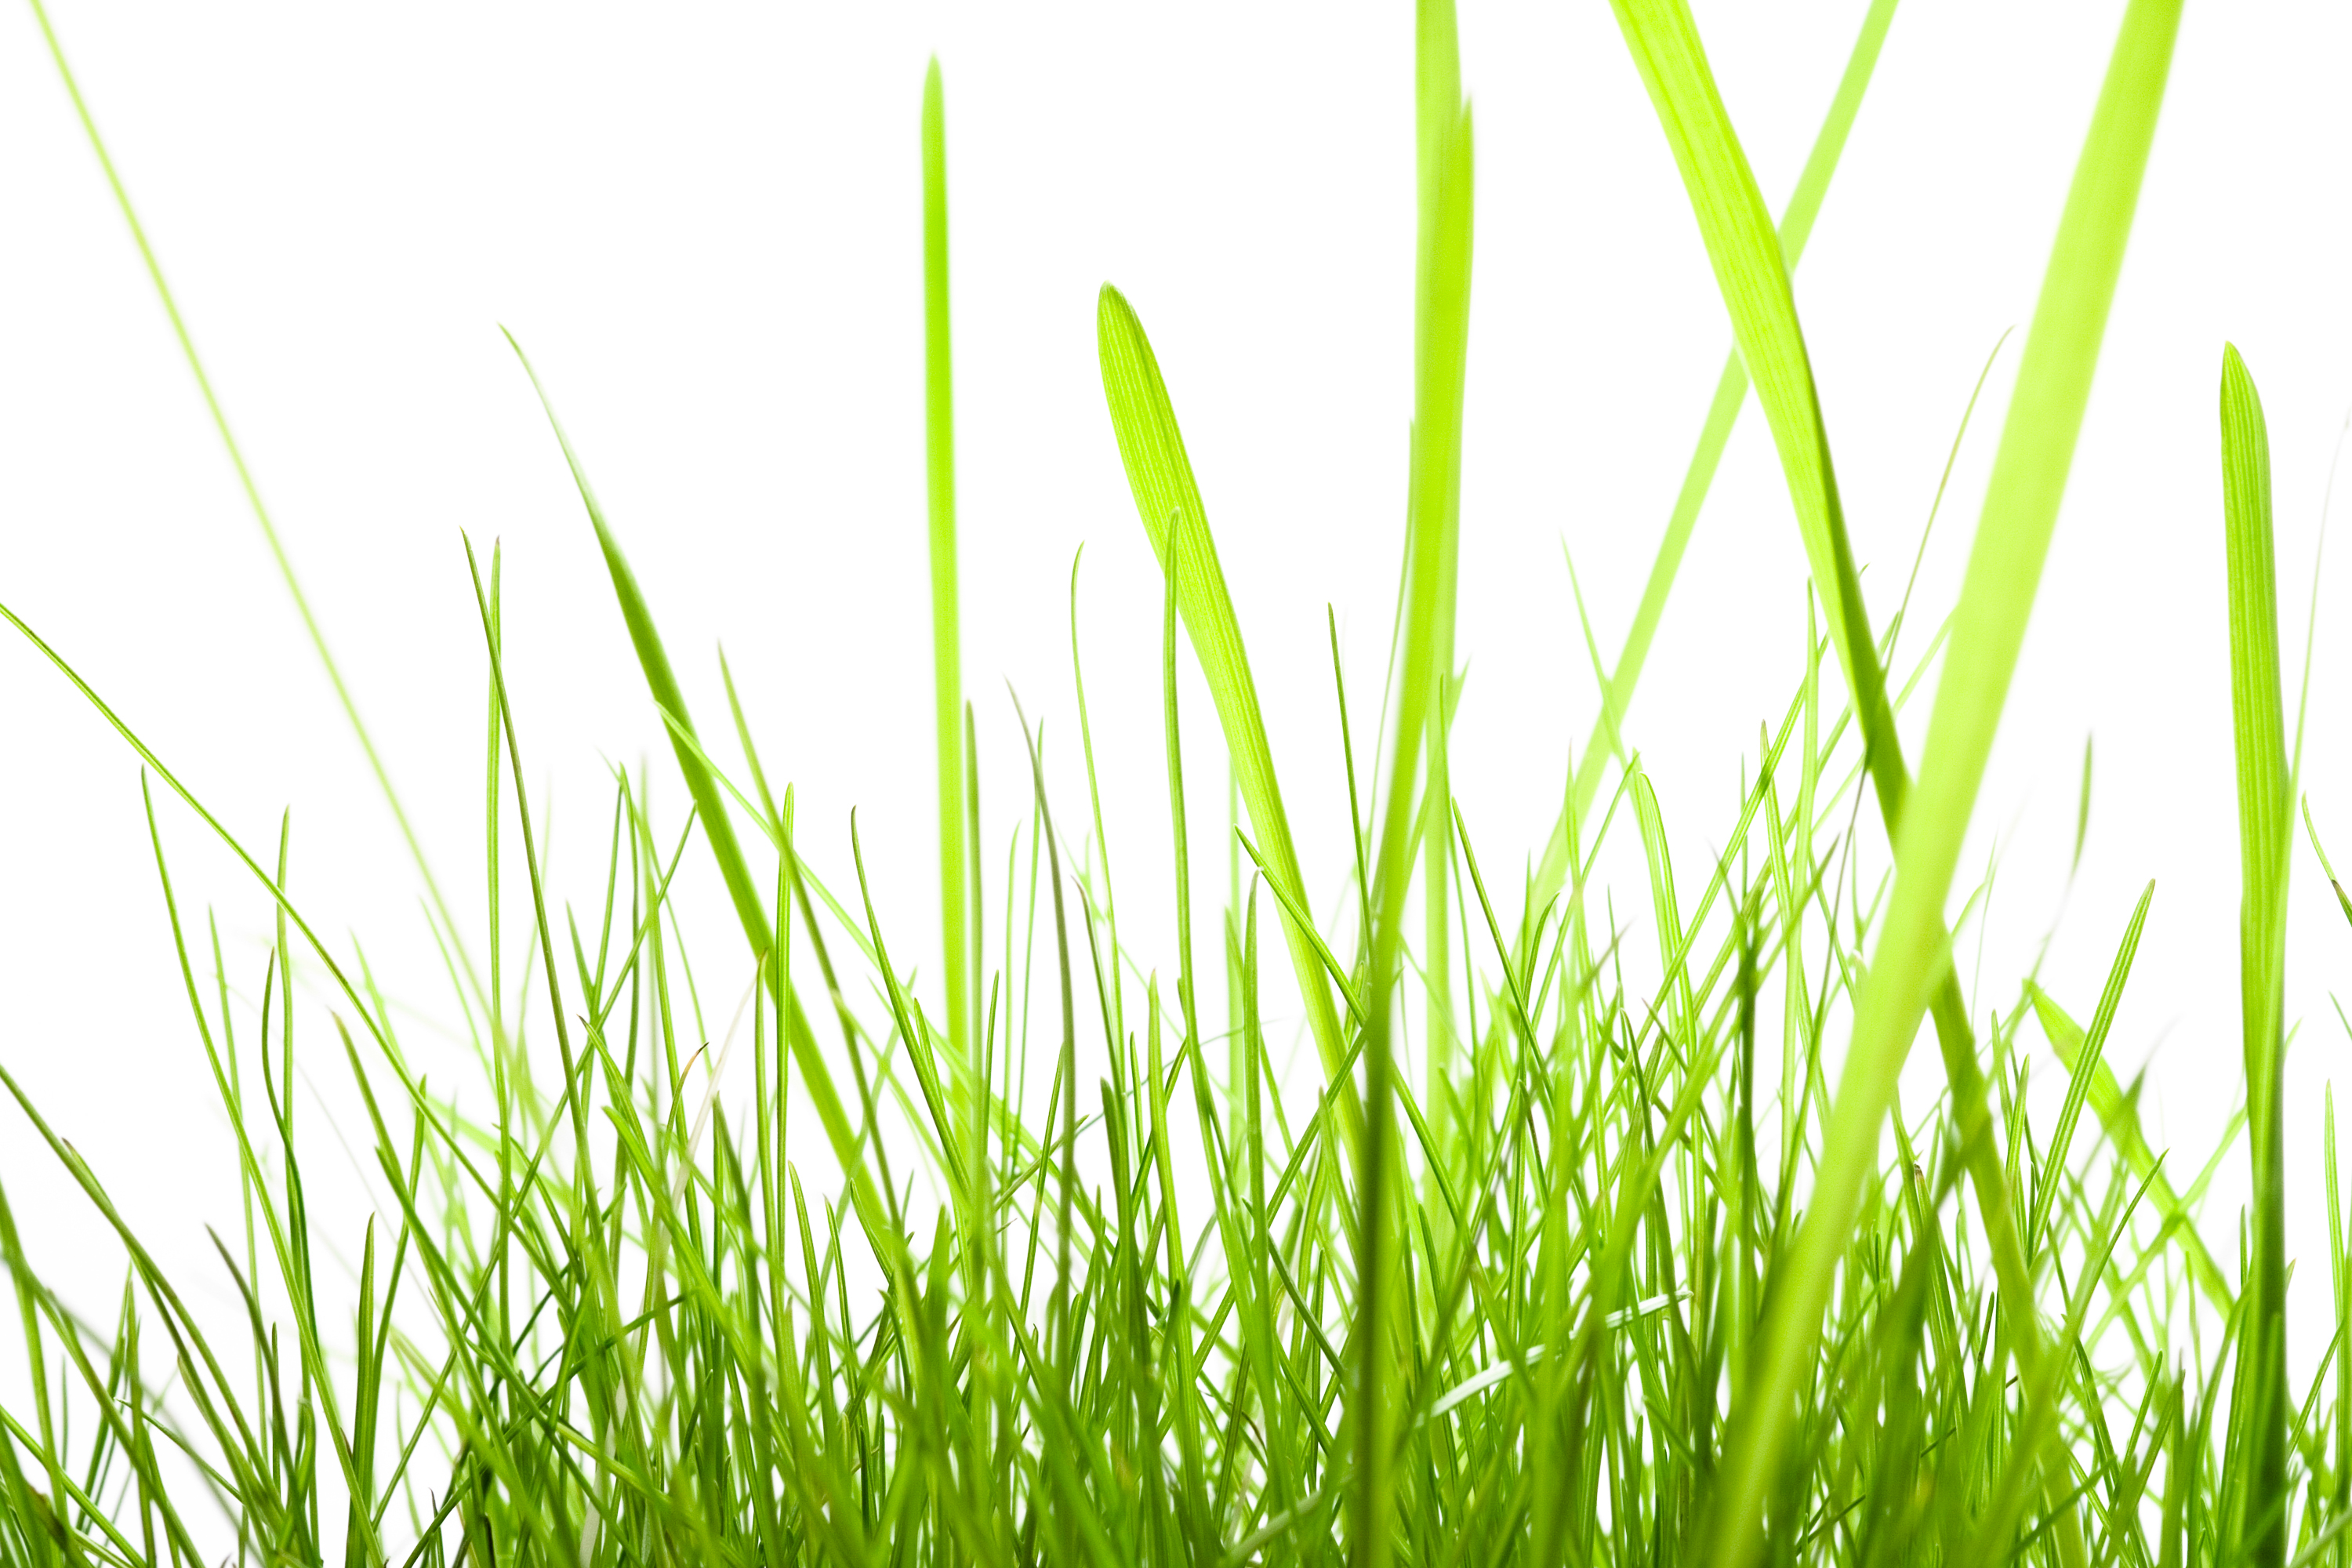 Green Grass, Plant, Nature, Outdoors, Spring, HQ Photo